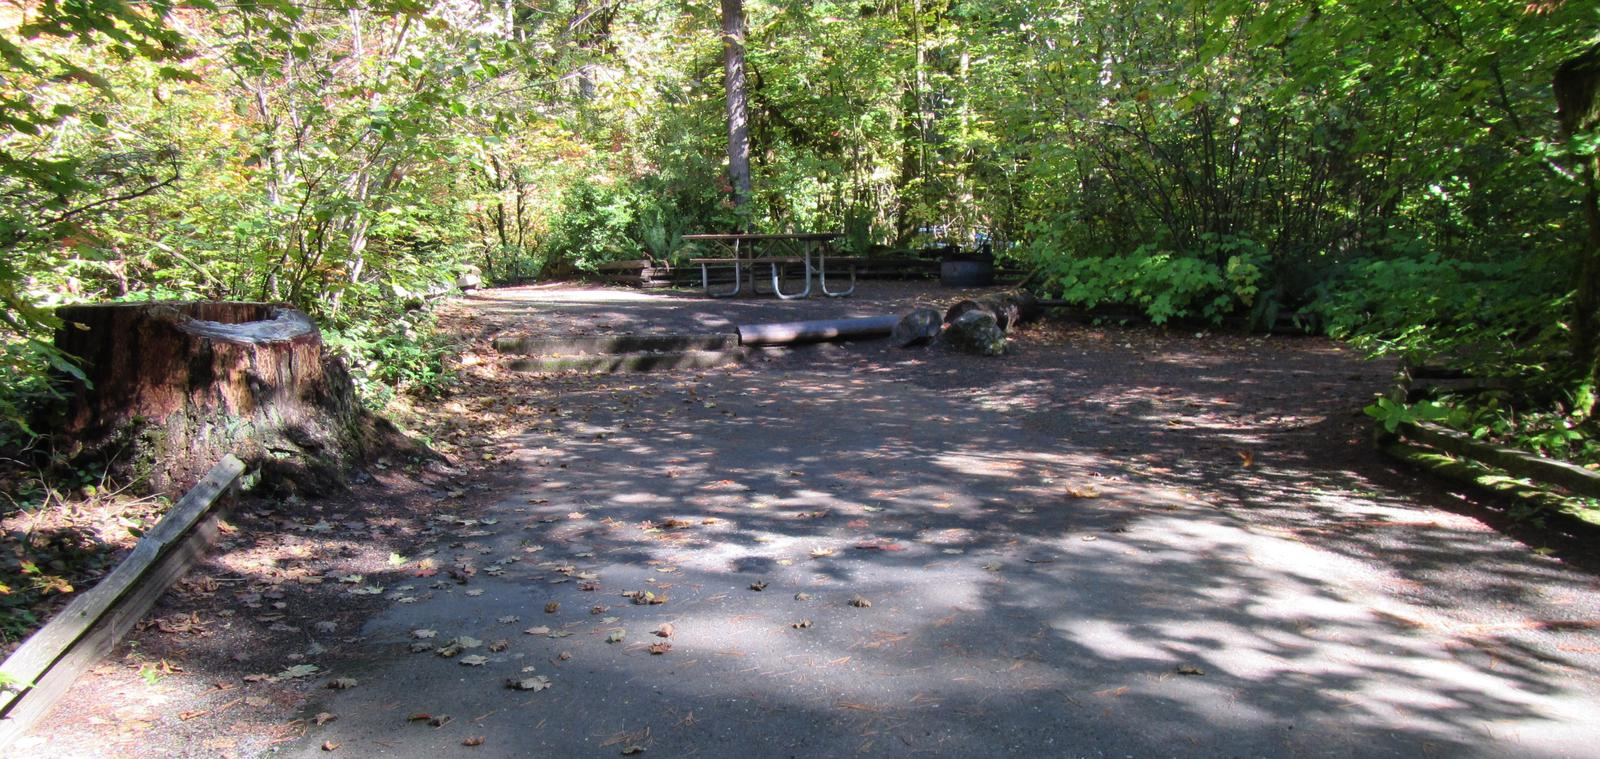 Whole camp site with steps up to camping area, parking spur measures 41'X12'